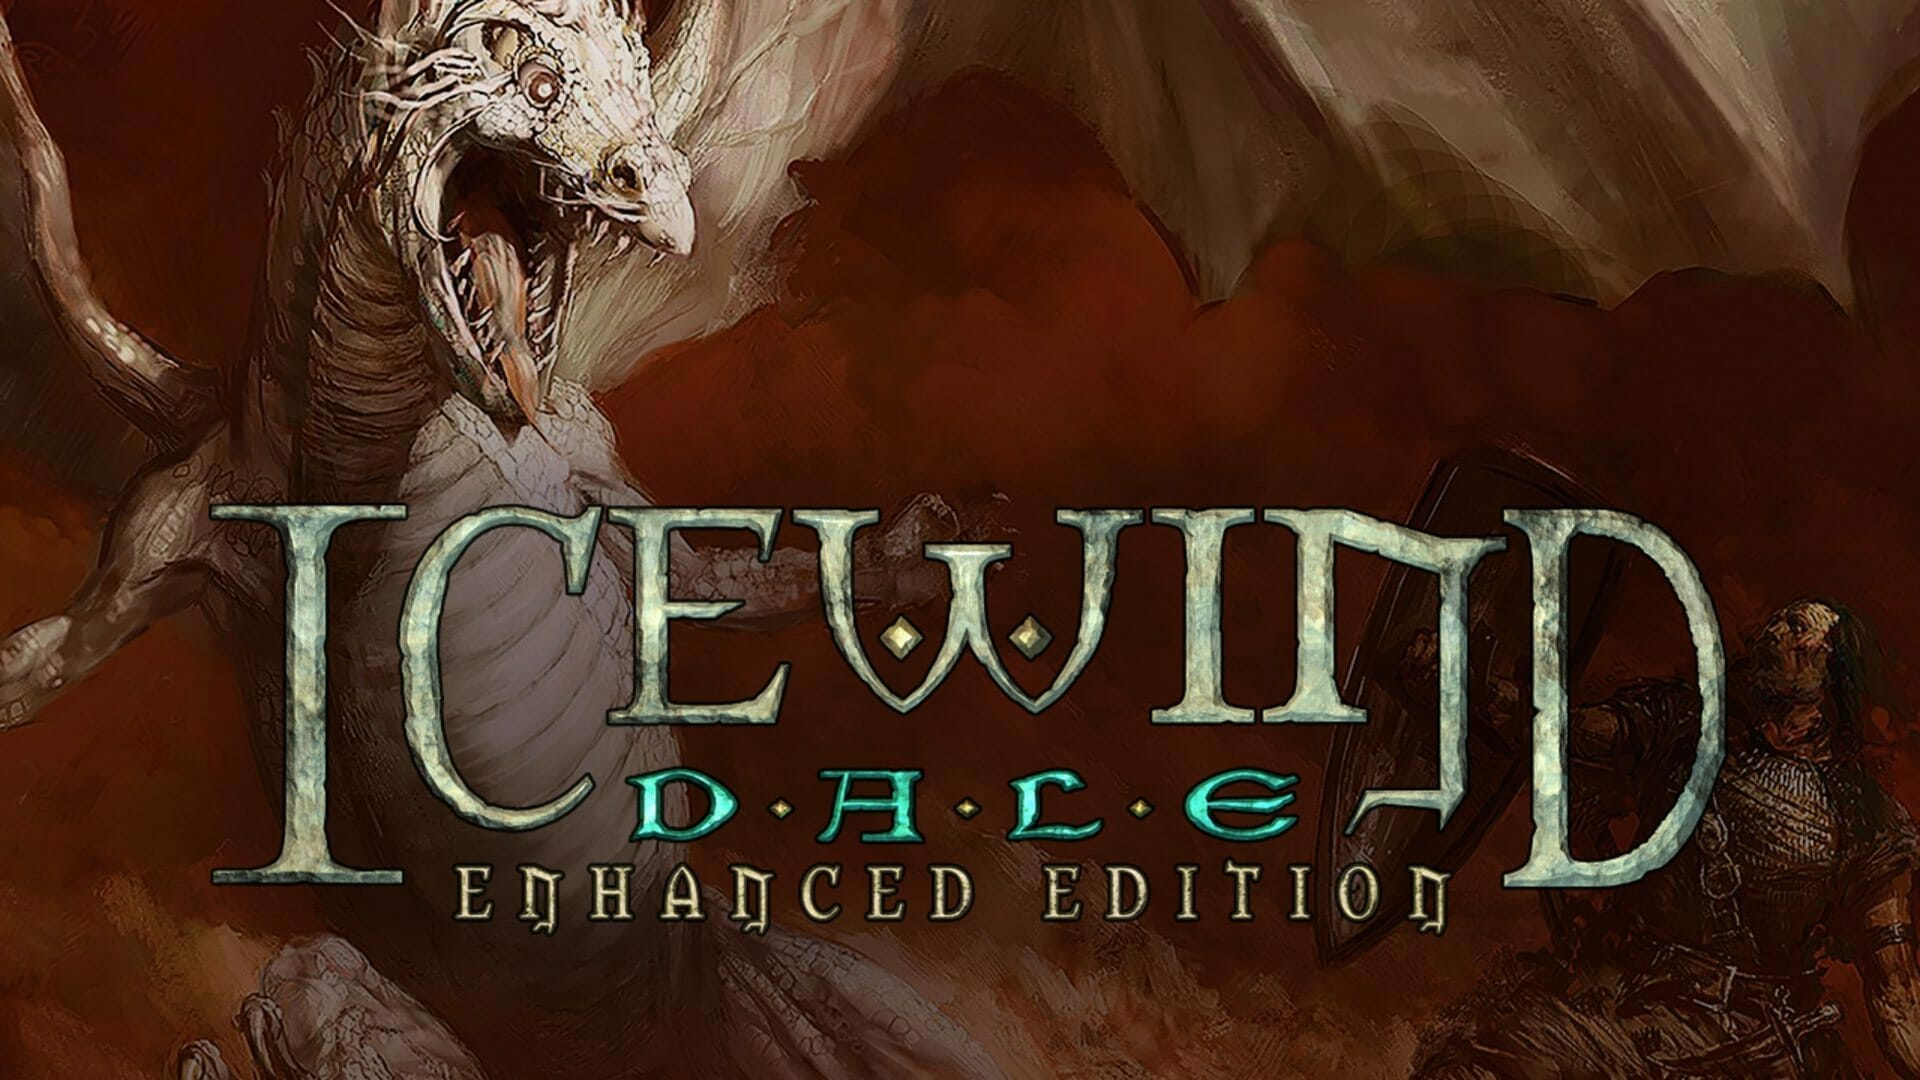 If you want to learn more about Icewind Dale, then the computer game is one first-hand way to do that.